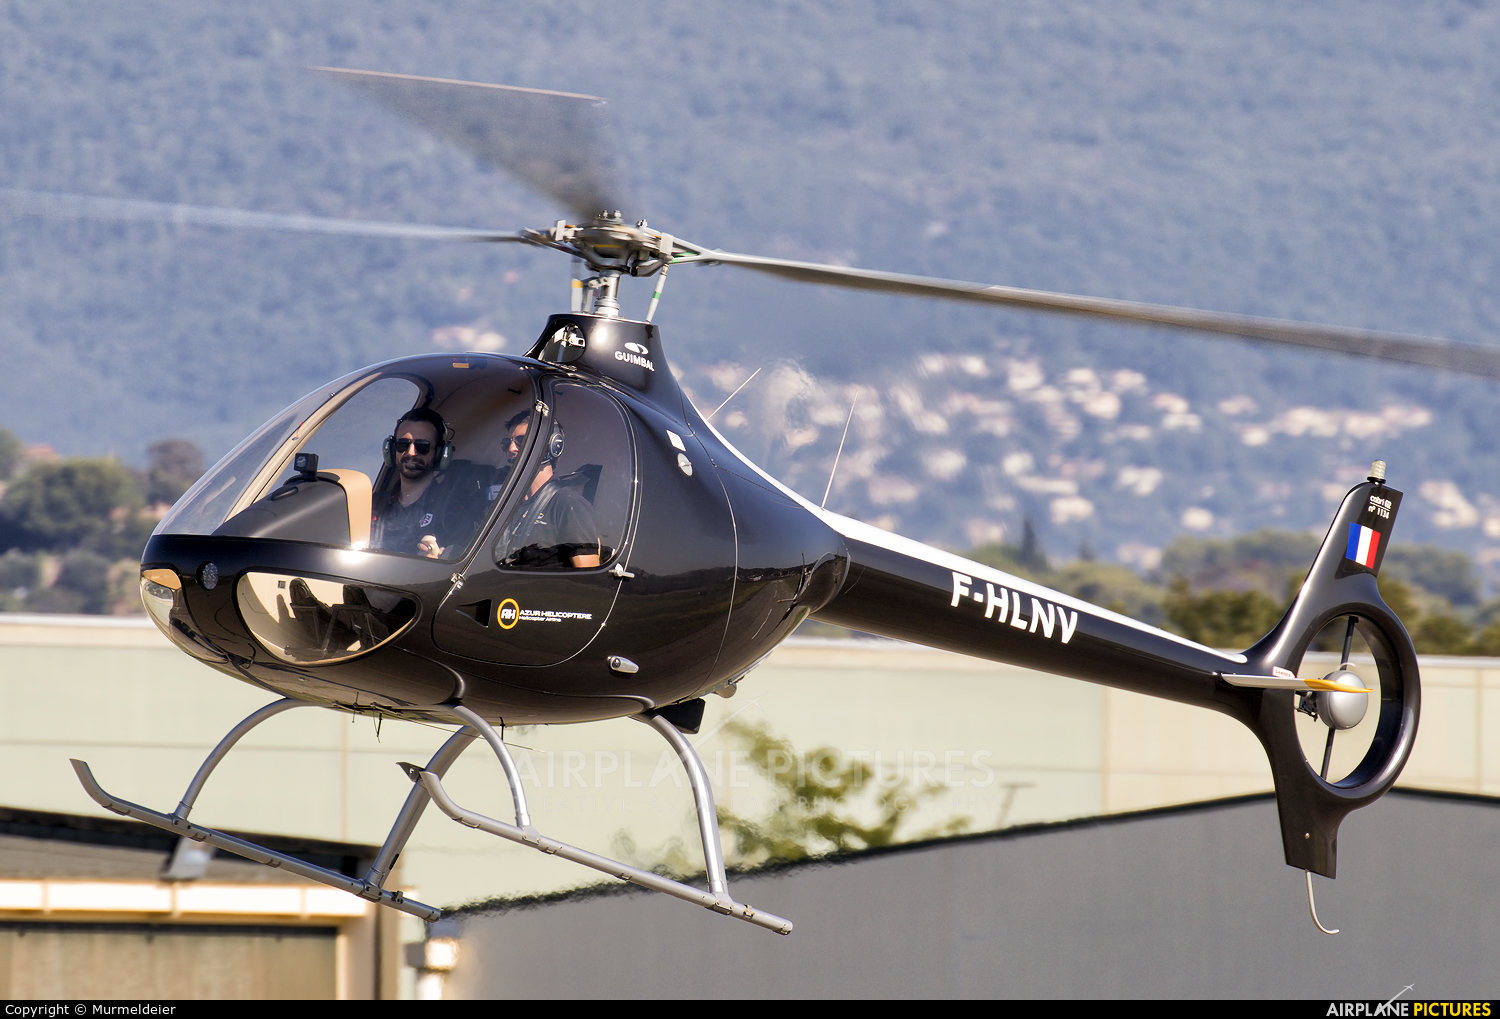 Azur Helicoptere F-HLNV aircraft at Cannes - Mandelieu